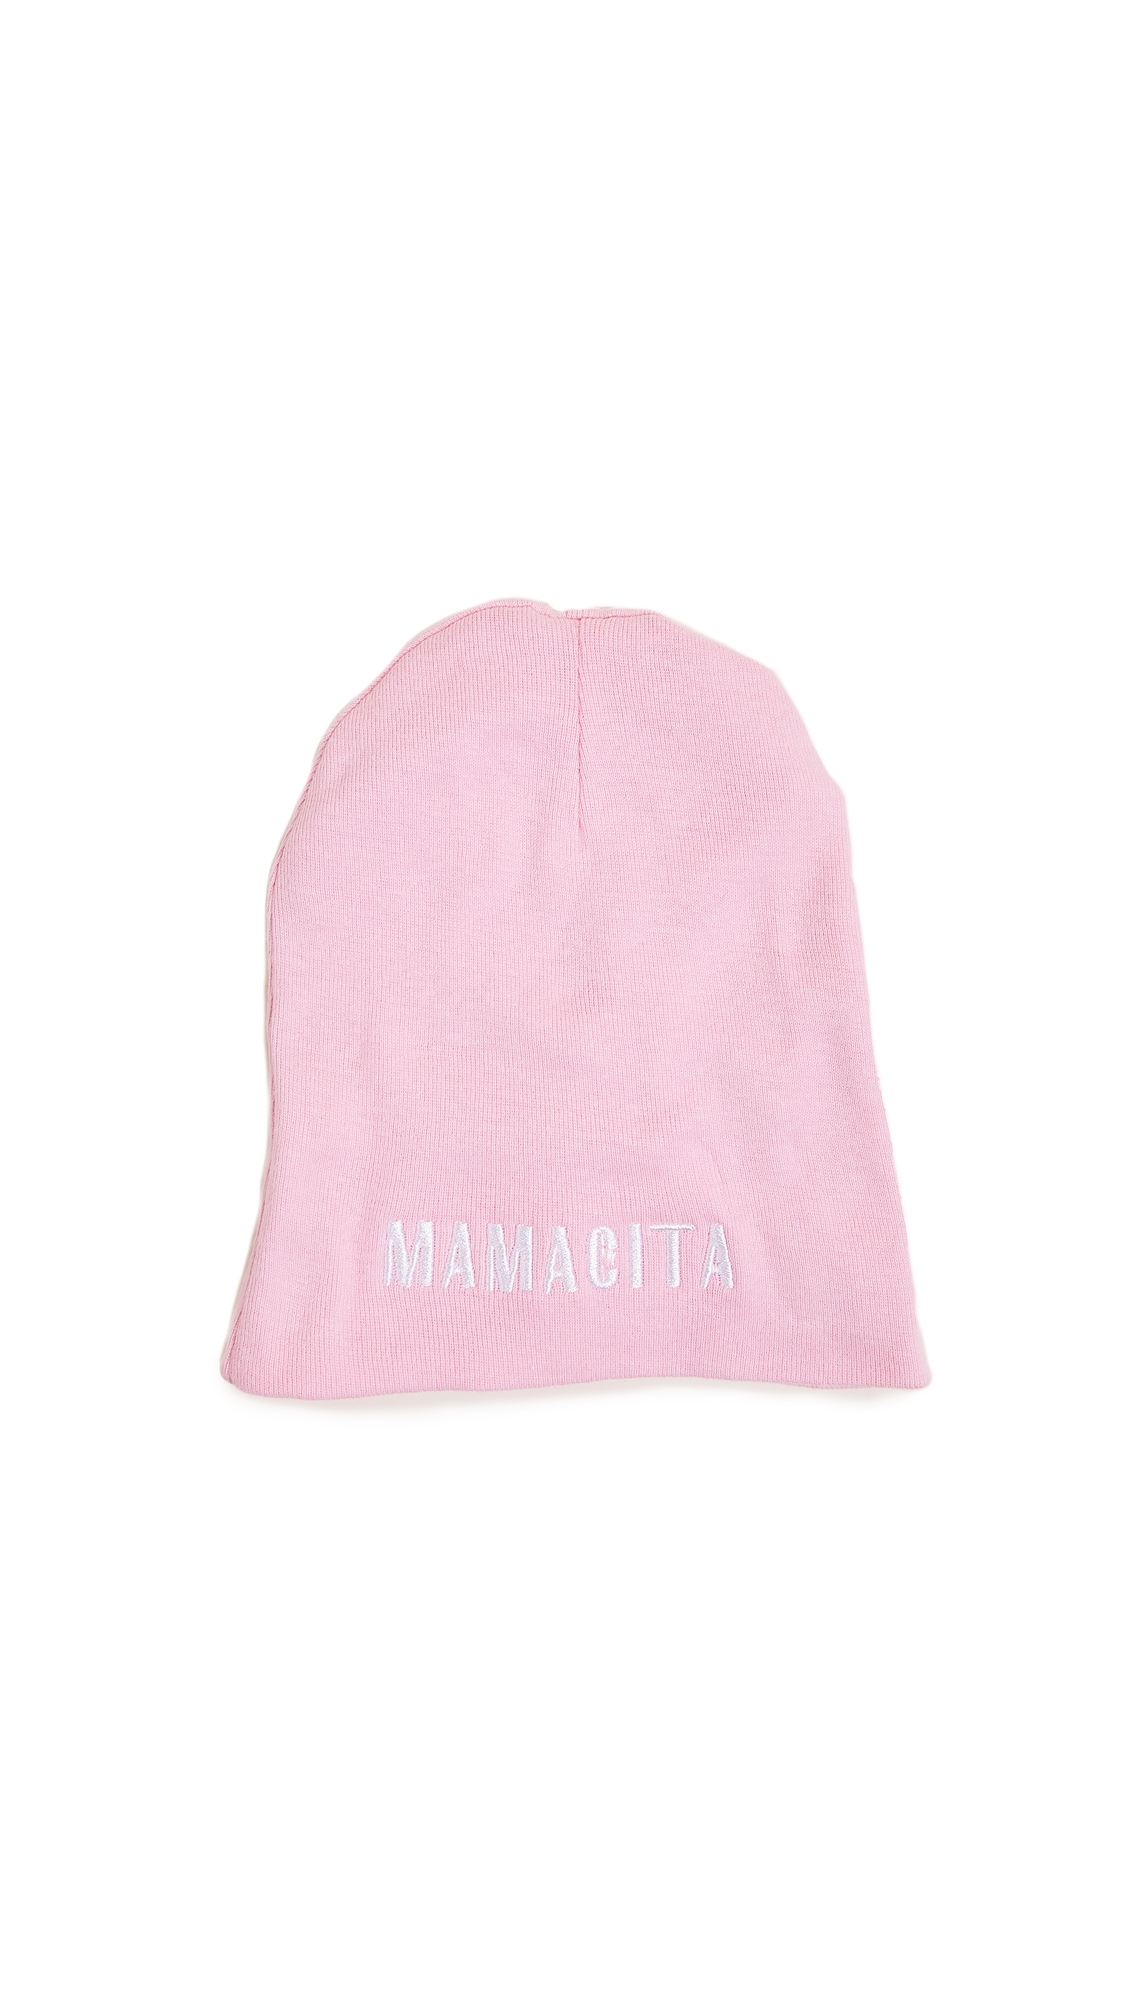 Private Party Mamacita Baby Hat - Pink